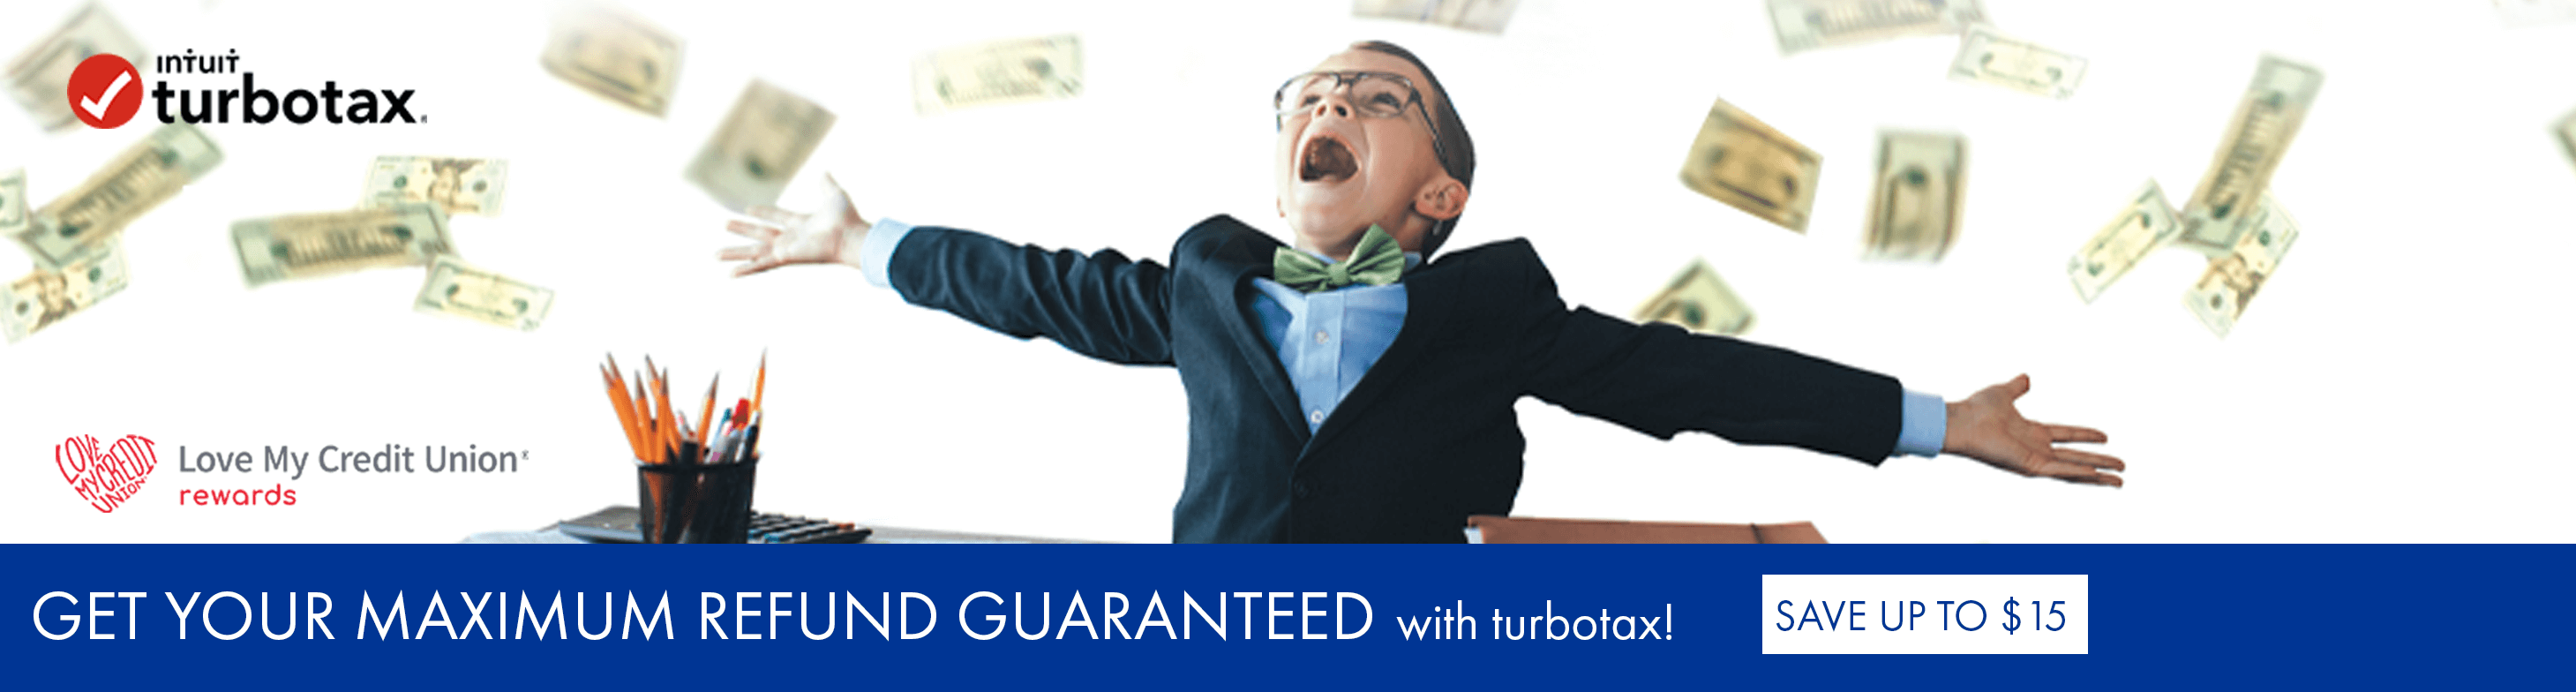 Get your maximum refund guaranteed with turbotax! Save up to $15